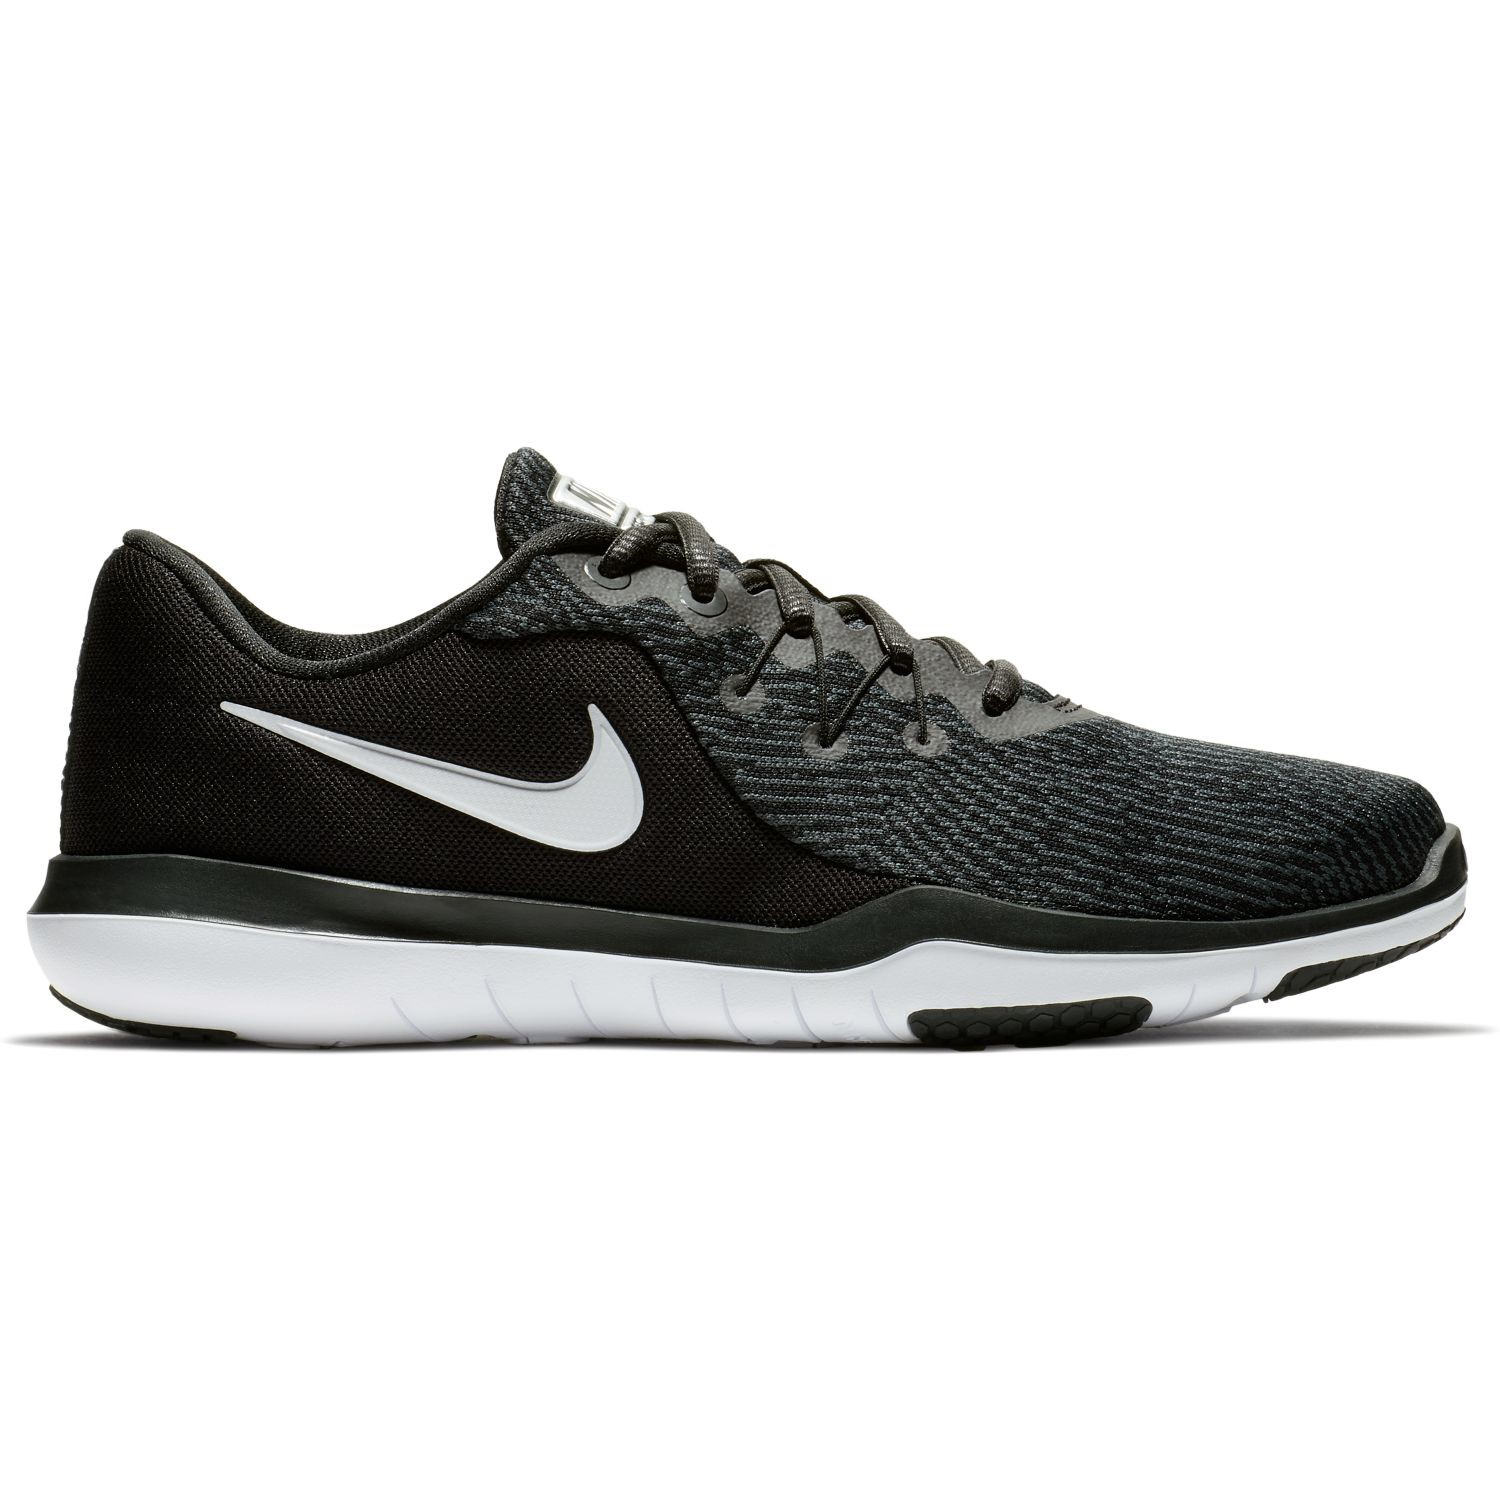 innovative design 24fa7 ecad3 Nike Flex Supreme TR 6 - Womens Training Shoes - Black White Anthracite